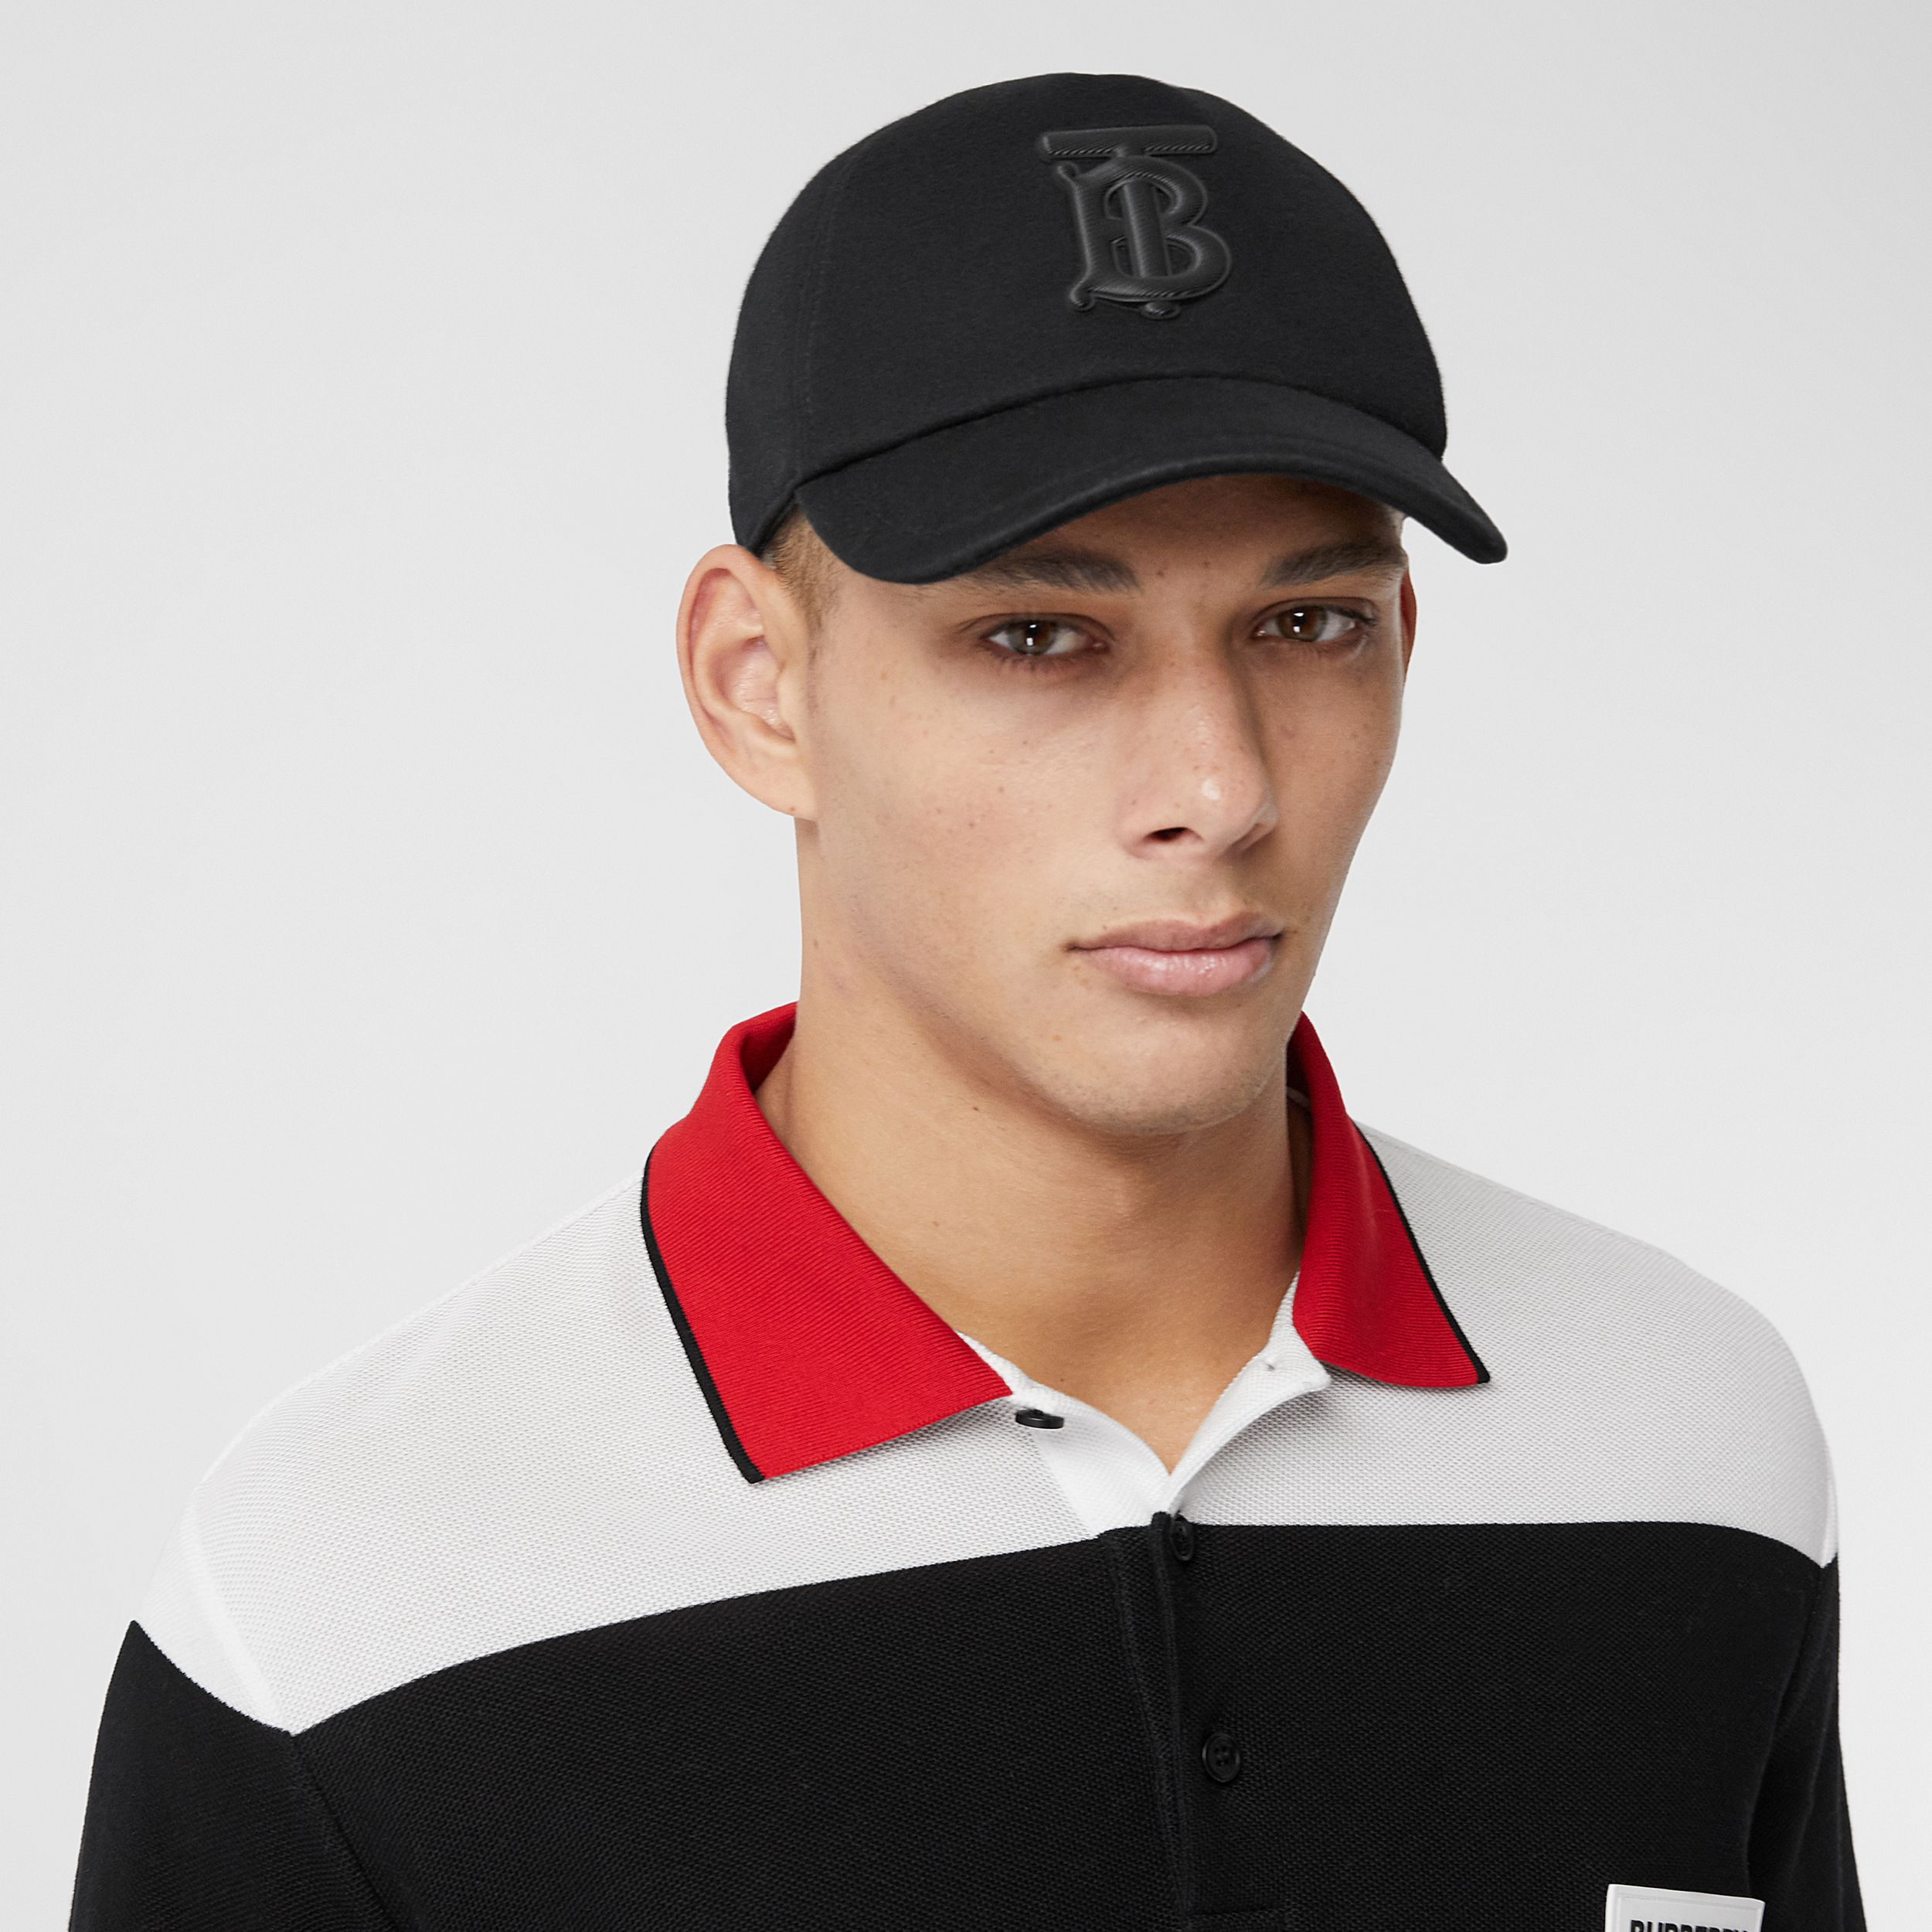 Monogram Motif Neoprene Baseball Cap in Black | Burberry - 4